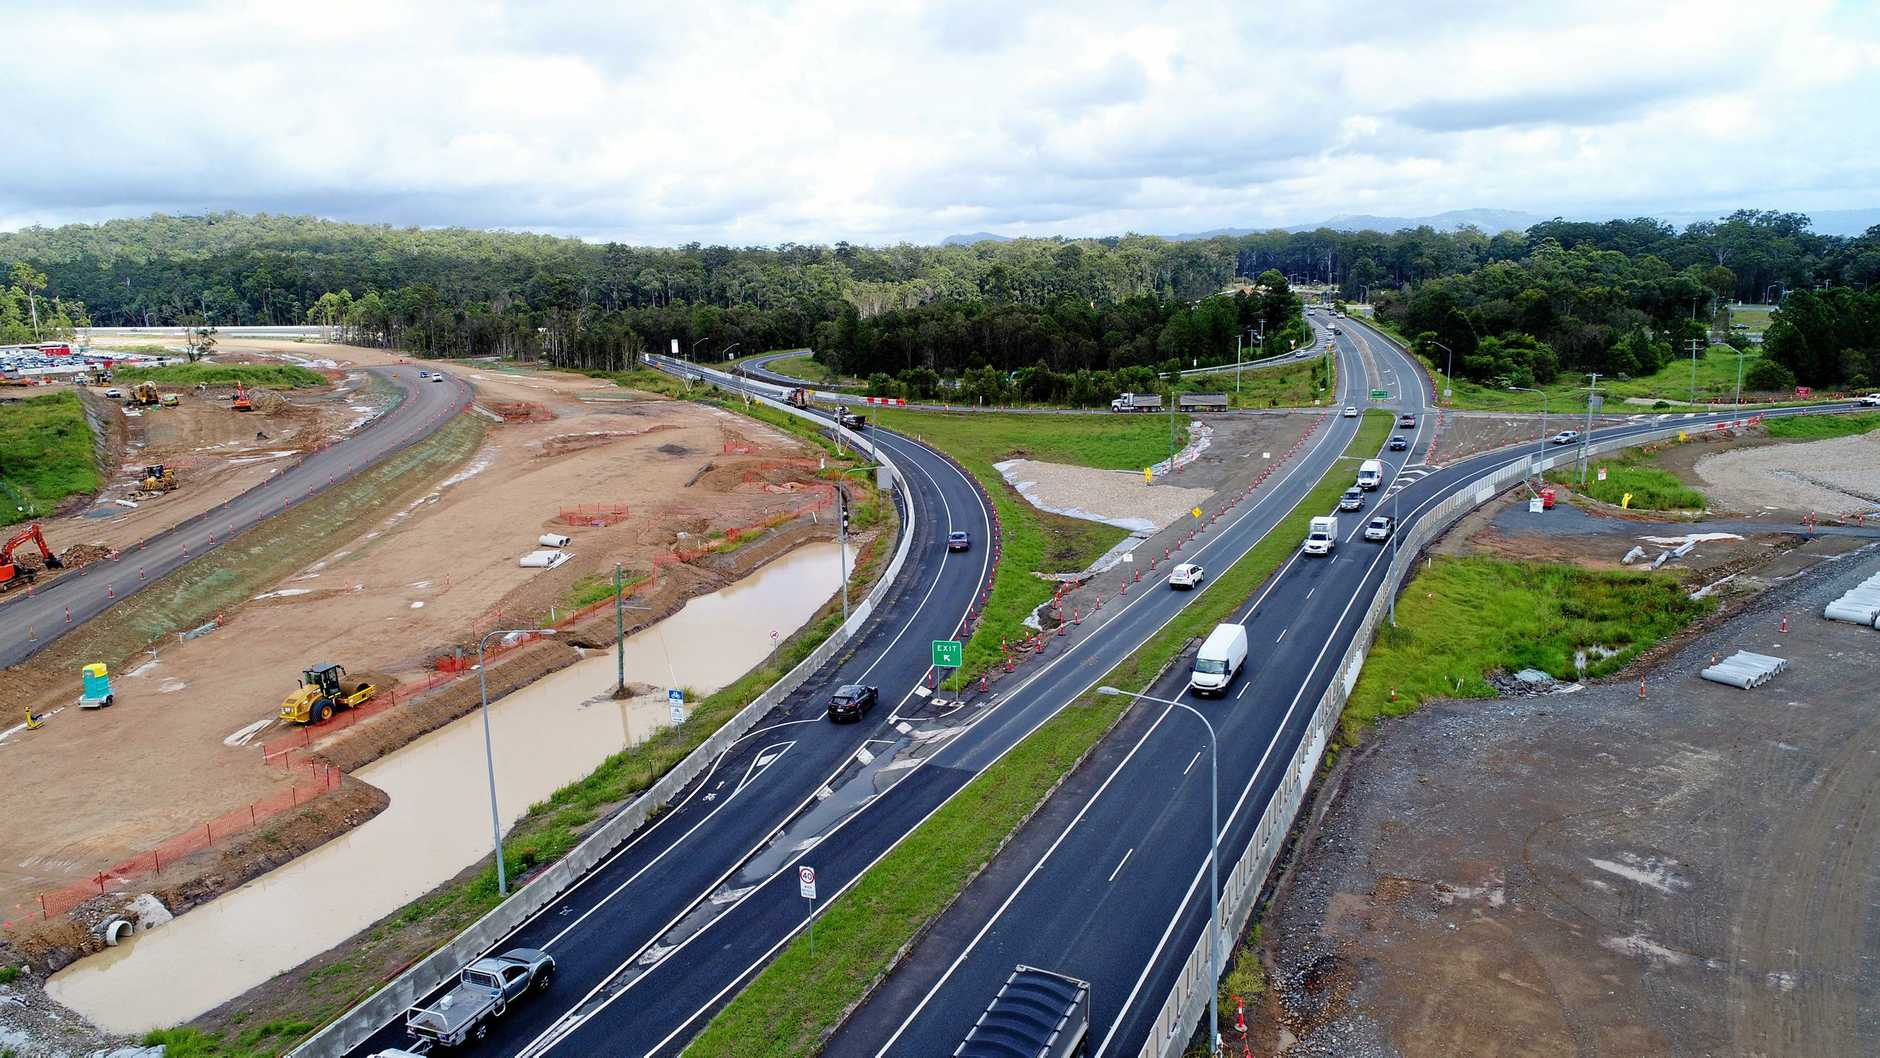 Drone aerial photo of Bruce Highway upgrade at Caloundra Road on-ramp, Sunshine Coast. Picture taken in April.